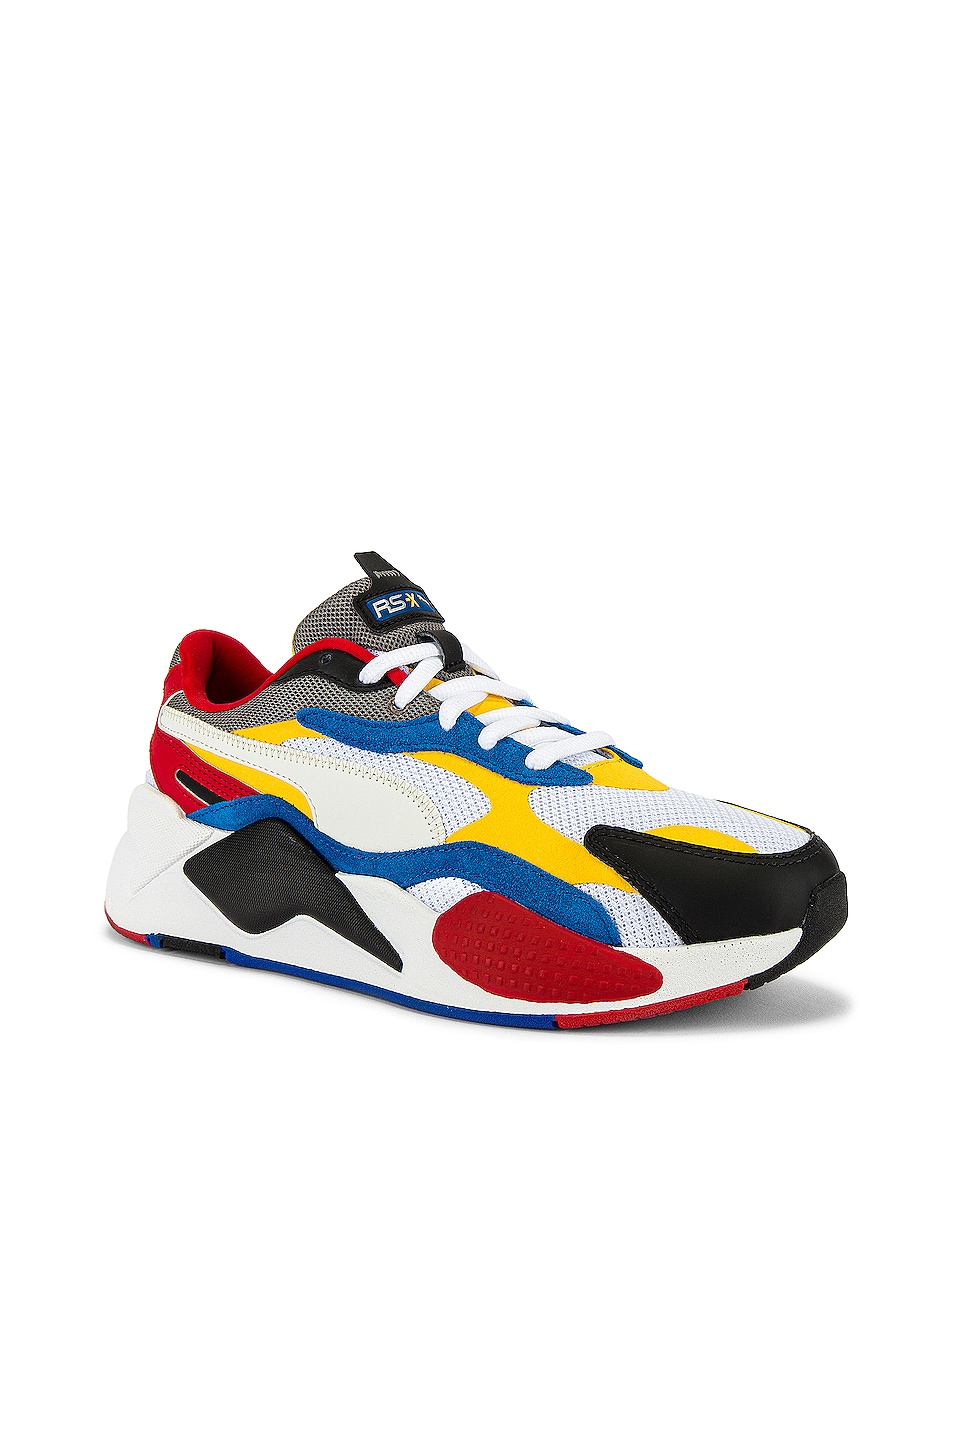 Image 1 of Puma Select RSX Cube RS-X3 Puzzle in Puma White & Spectra Yellow